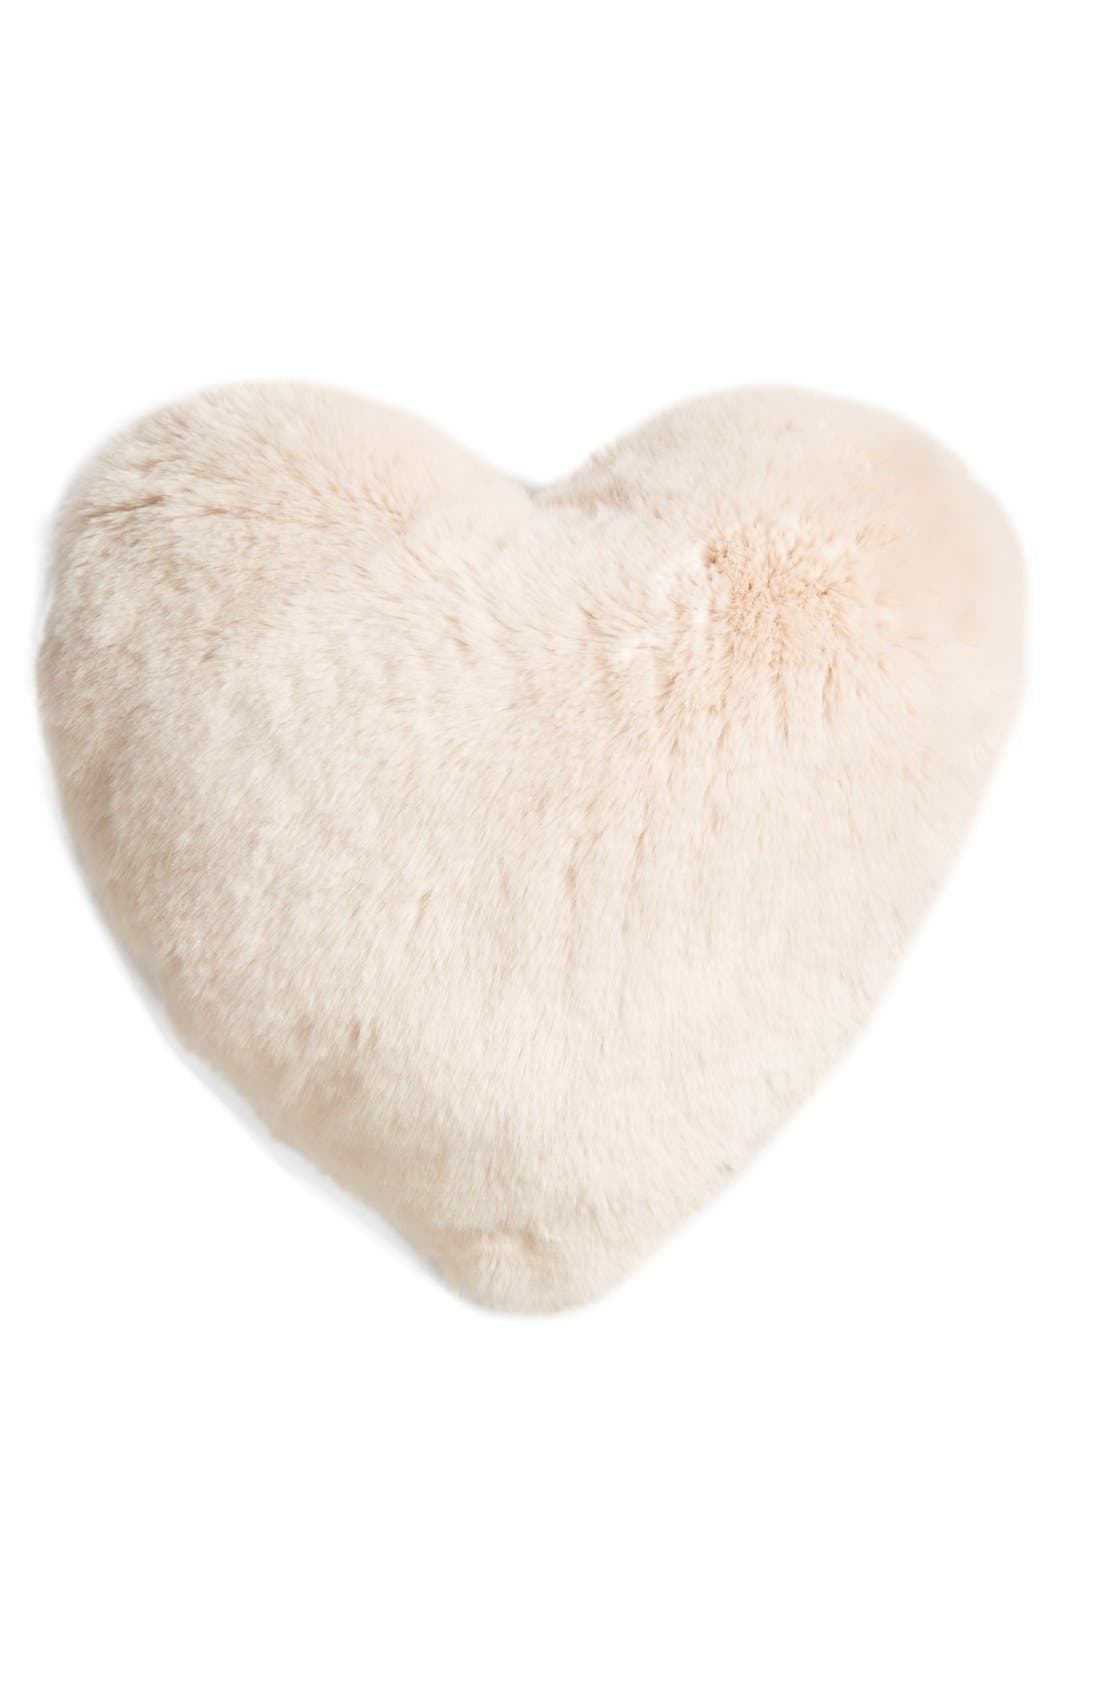 'Cuddle Up' Heart Accent Pillow,                             Main thumbnail 1, color,                             650